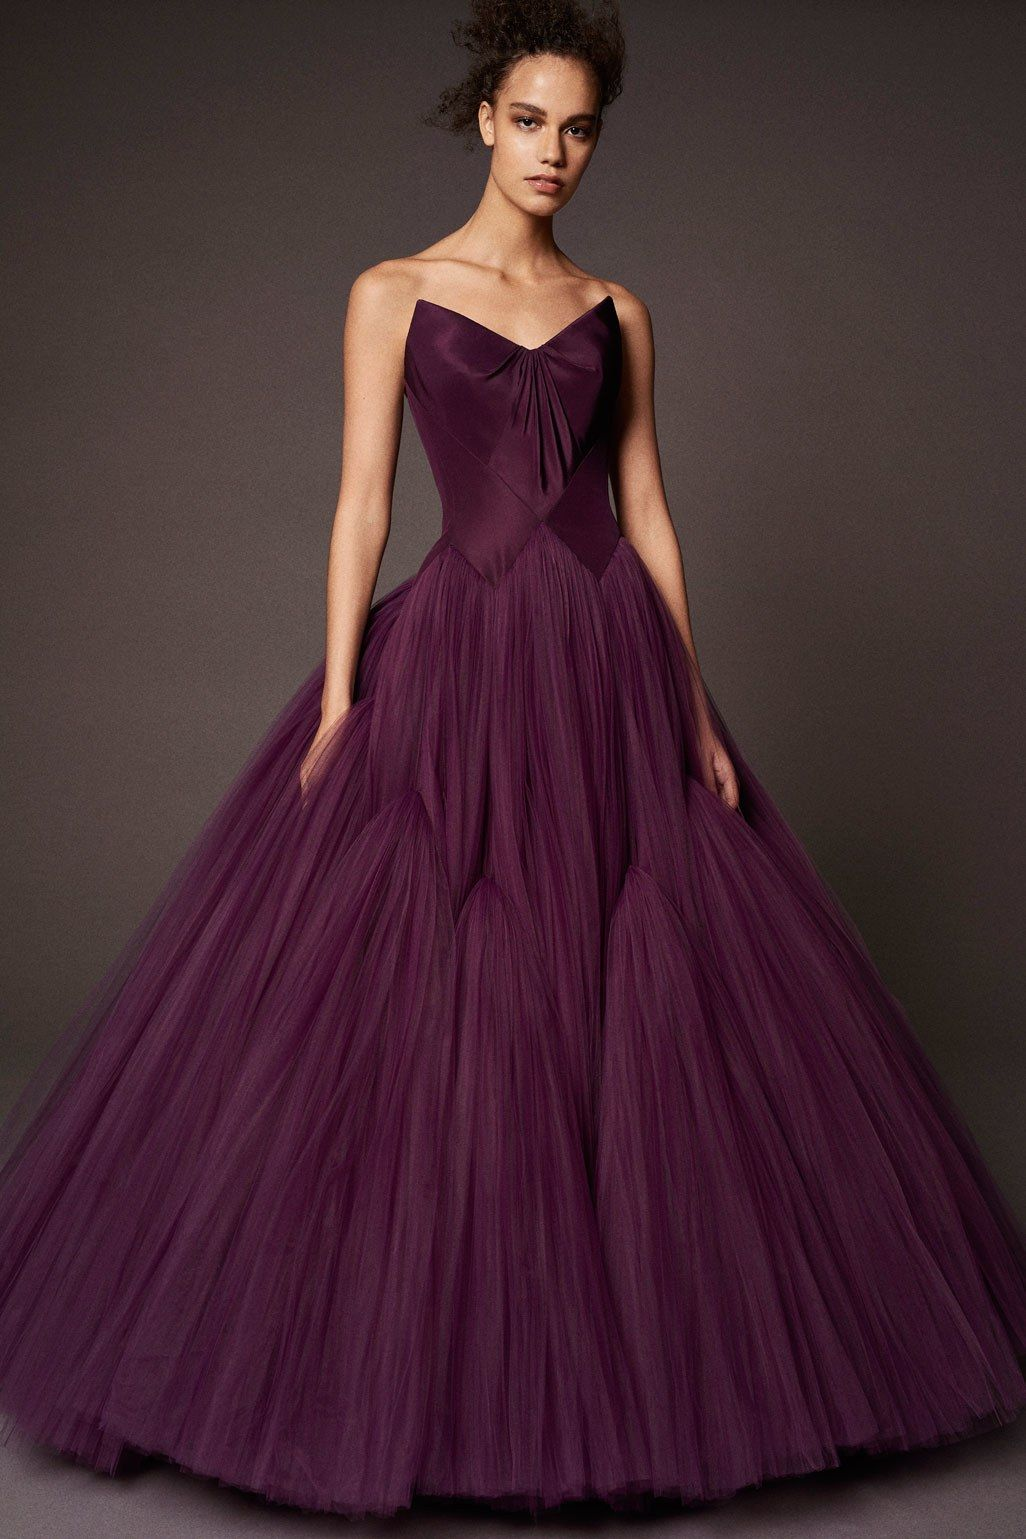 Zac posen wedding dress  December   at AM from fyeahgowns  Random  Pinterest